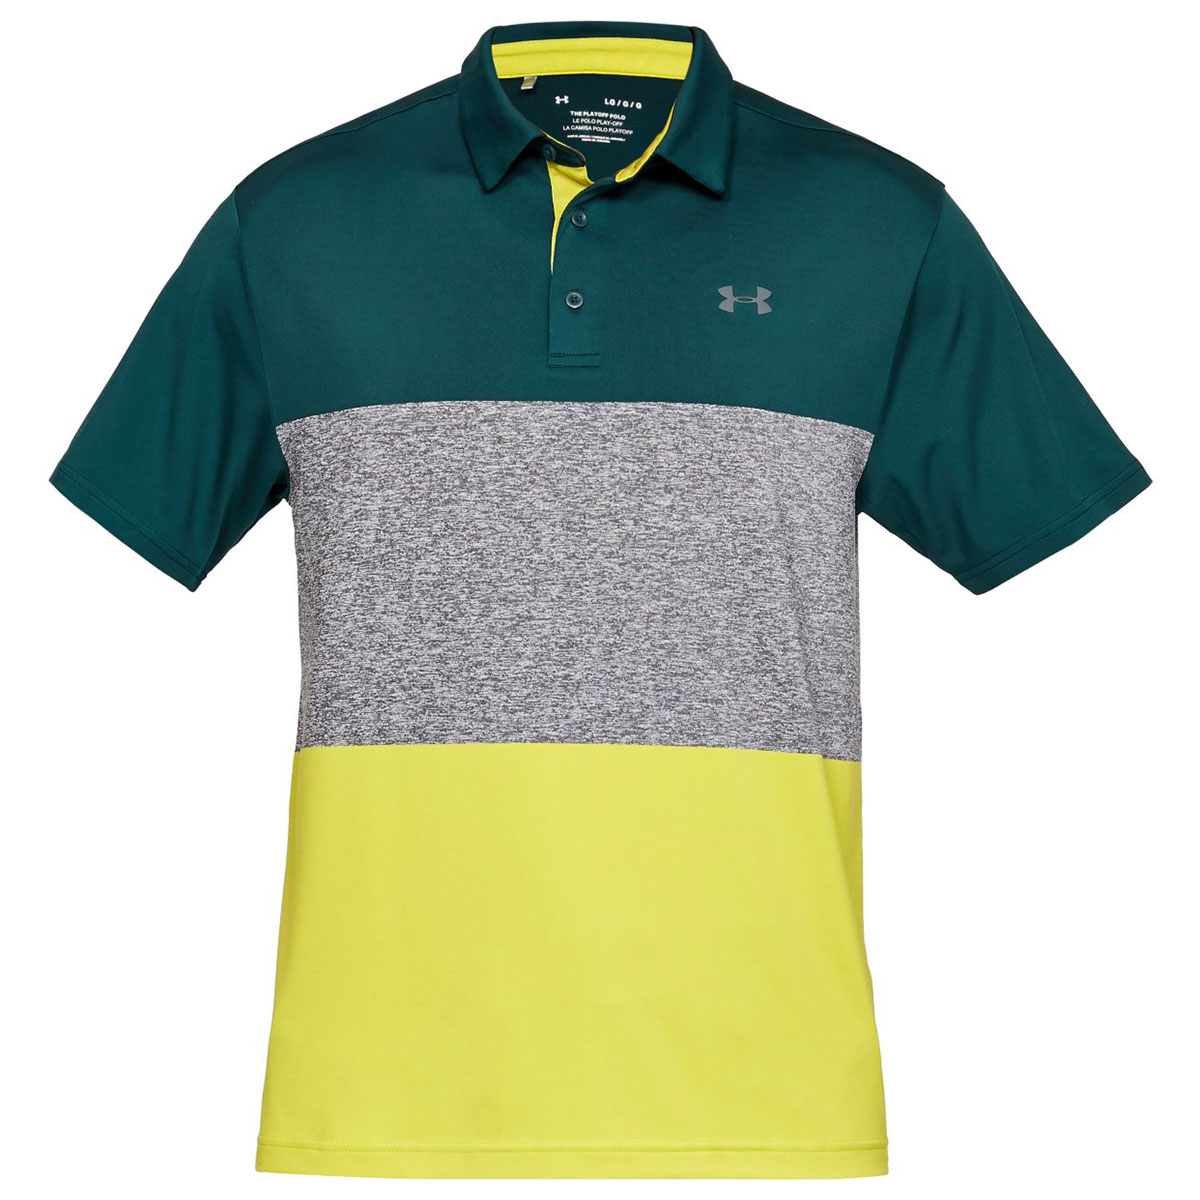 Under-Armour-Mens-2019-Playoff-Polo-2-0-Breathable-Light-Stretch-Polo-Shirt thumbnail 28